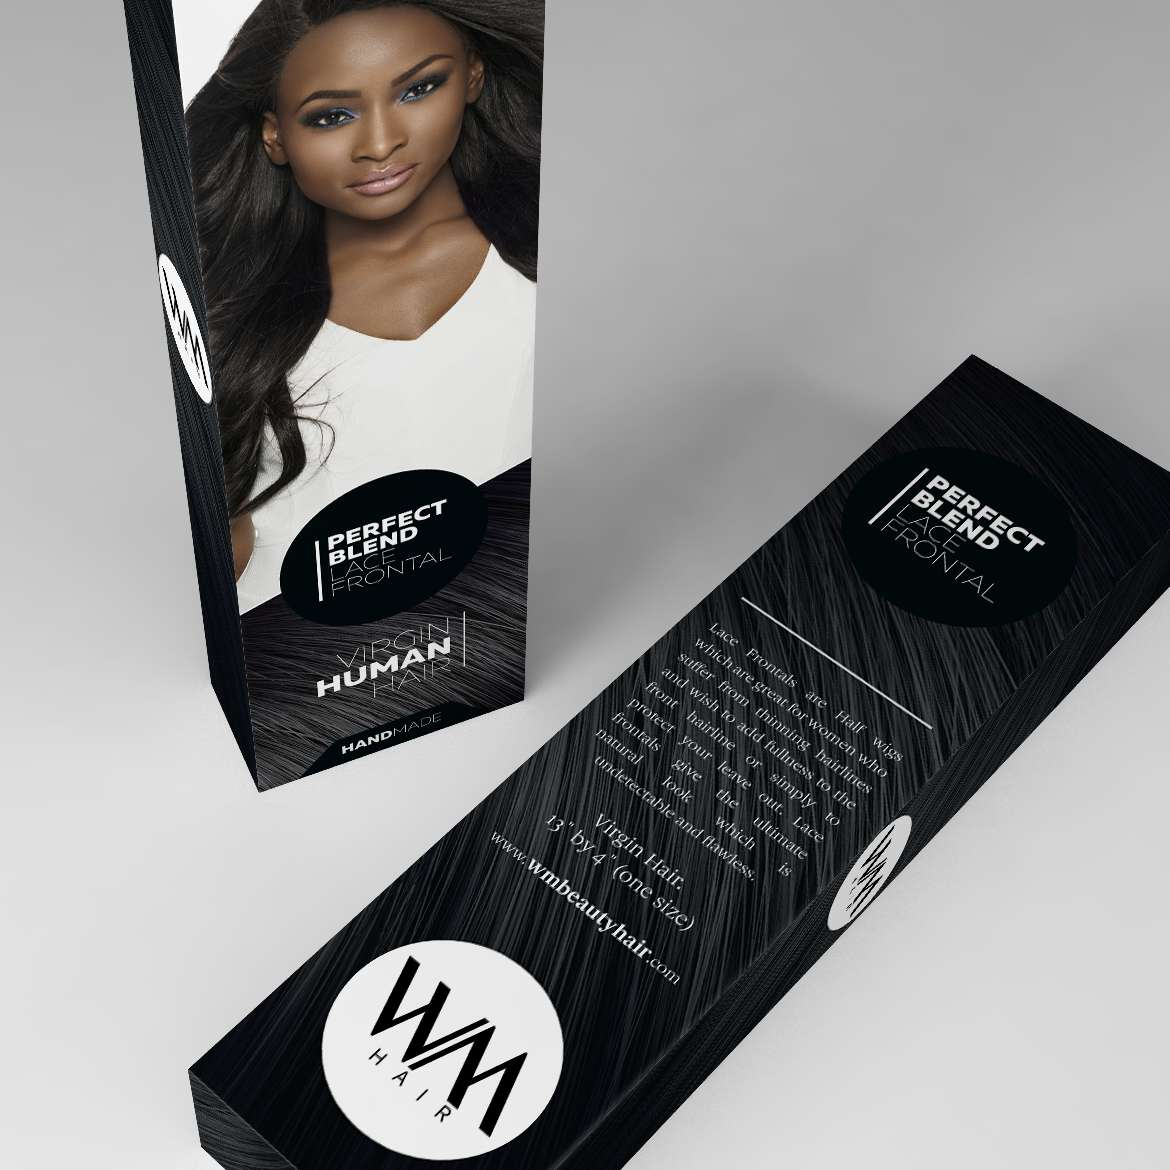 lace-frontal-whitney-marie-virgin-human-hair-extensions-packaging-design-with-reverse-zoomed-out-image